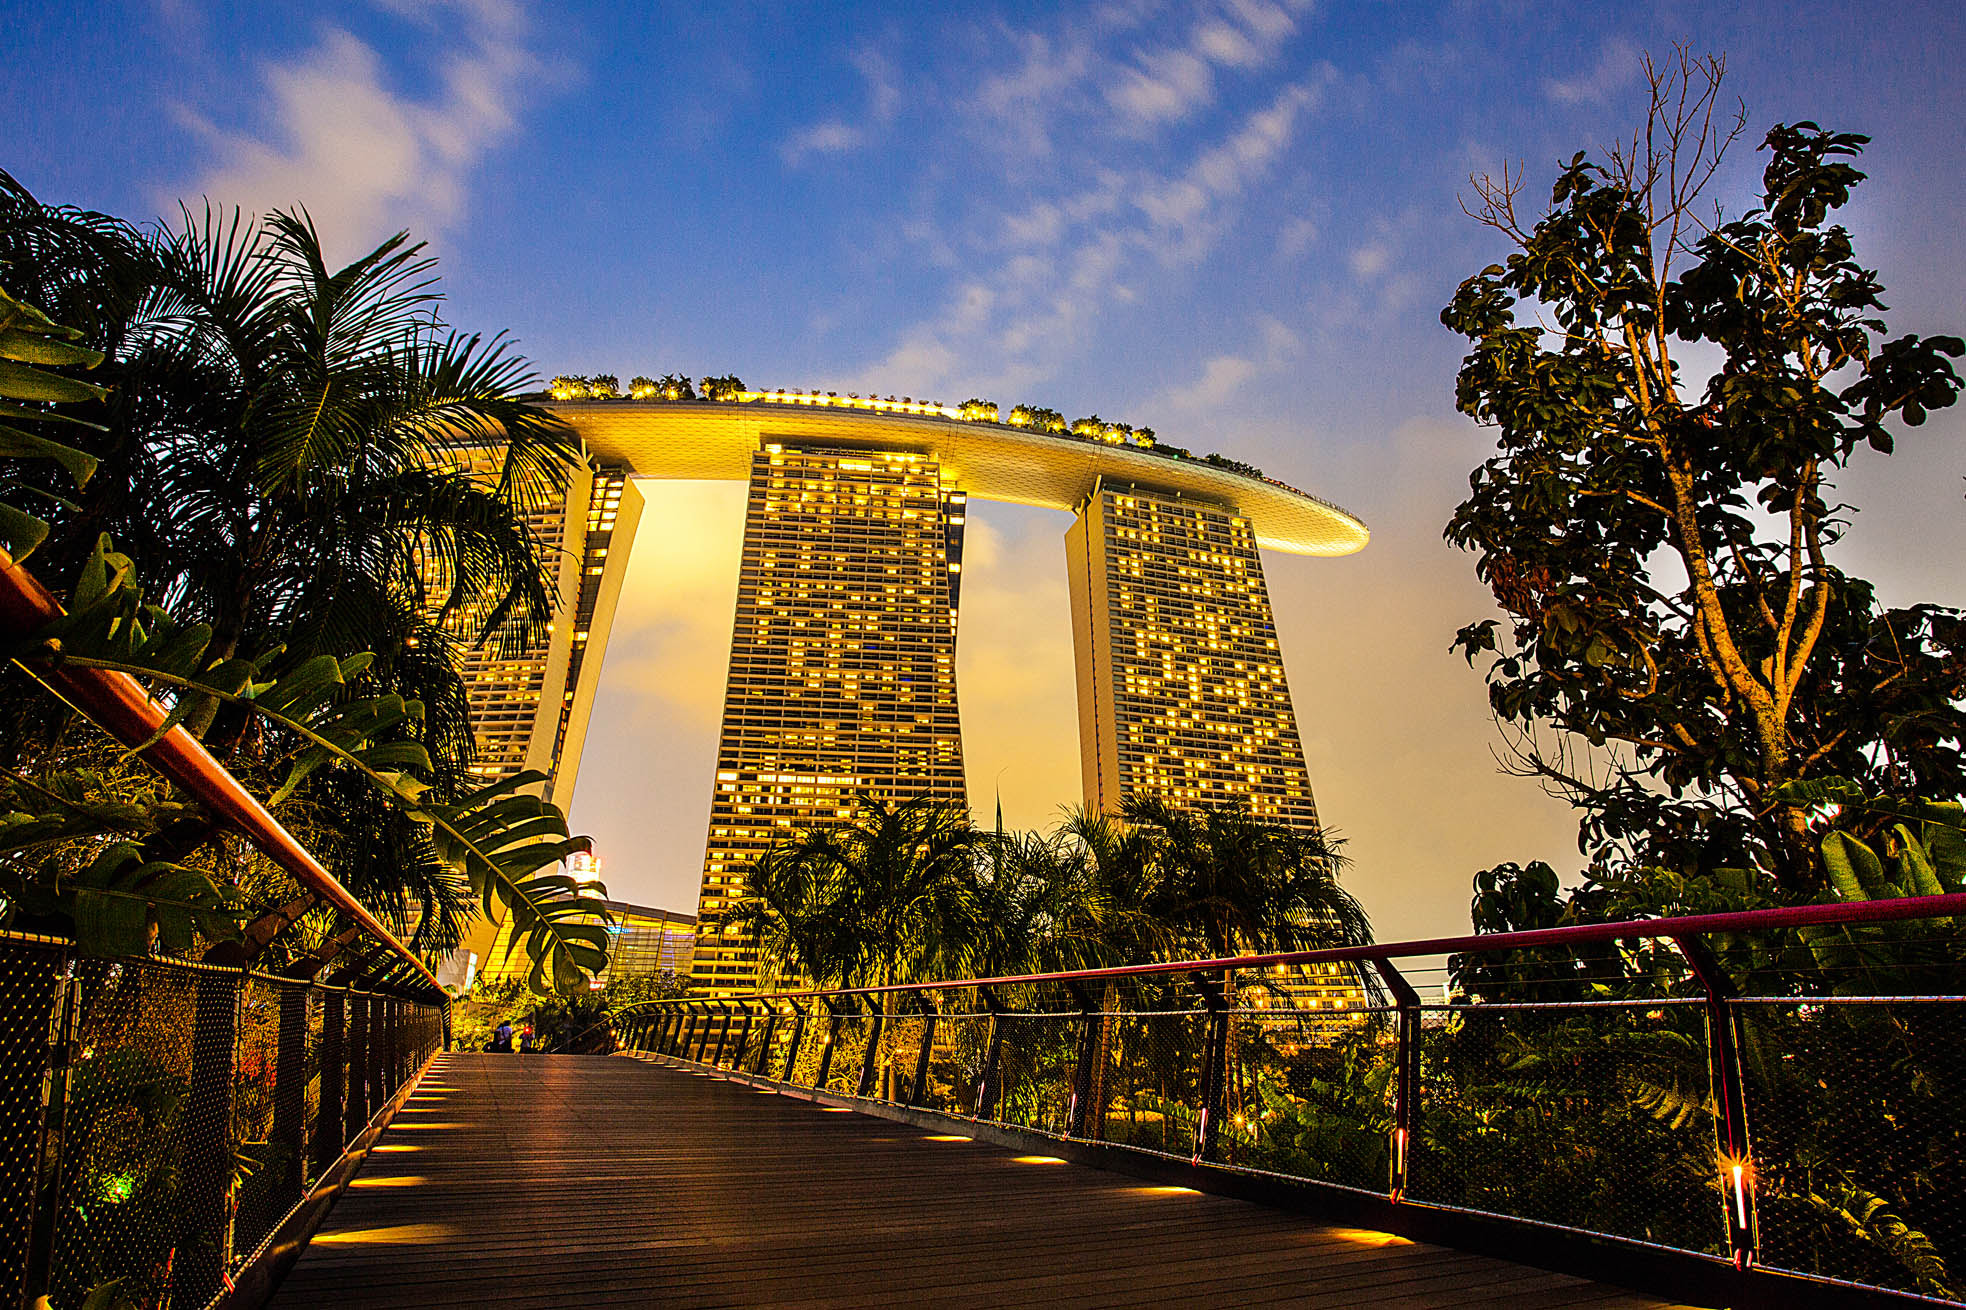 Photograph Golden MBS by Stephen Liono on 500px